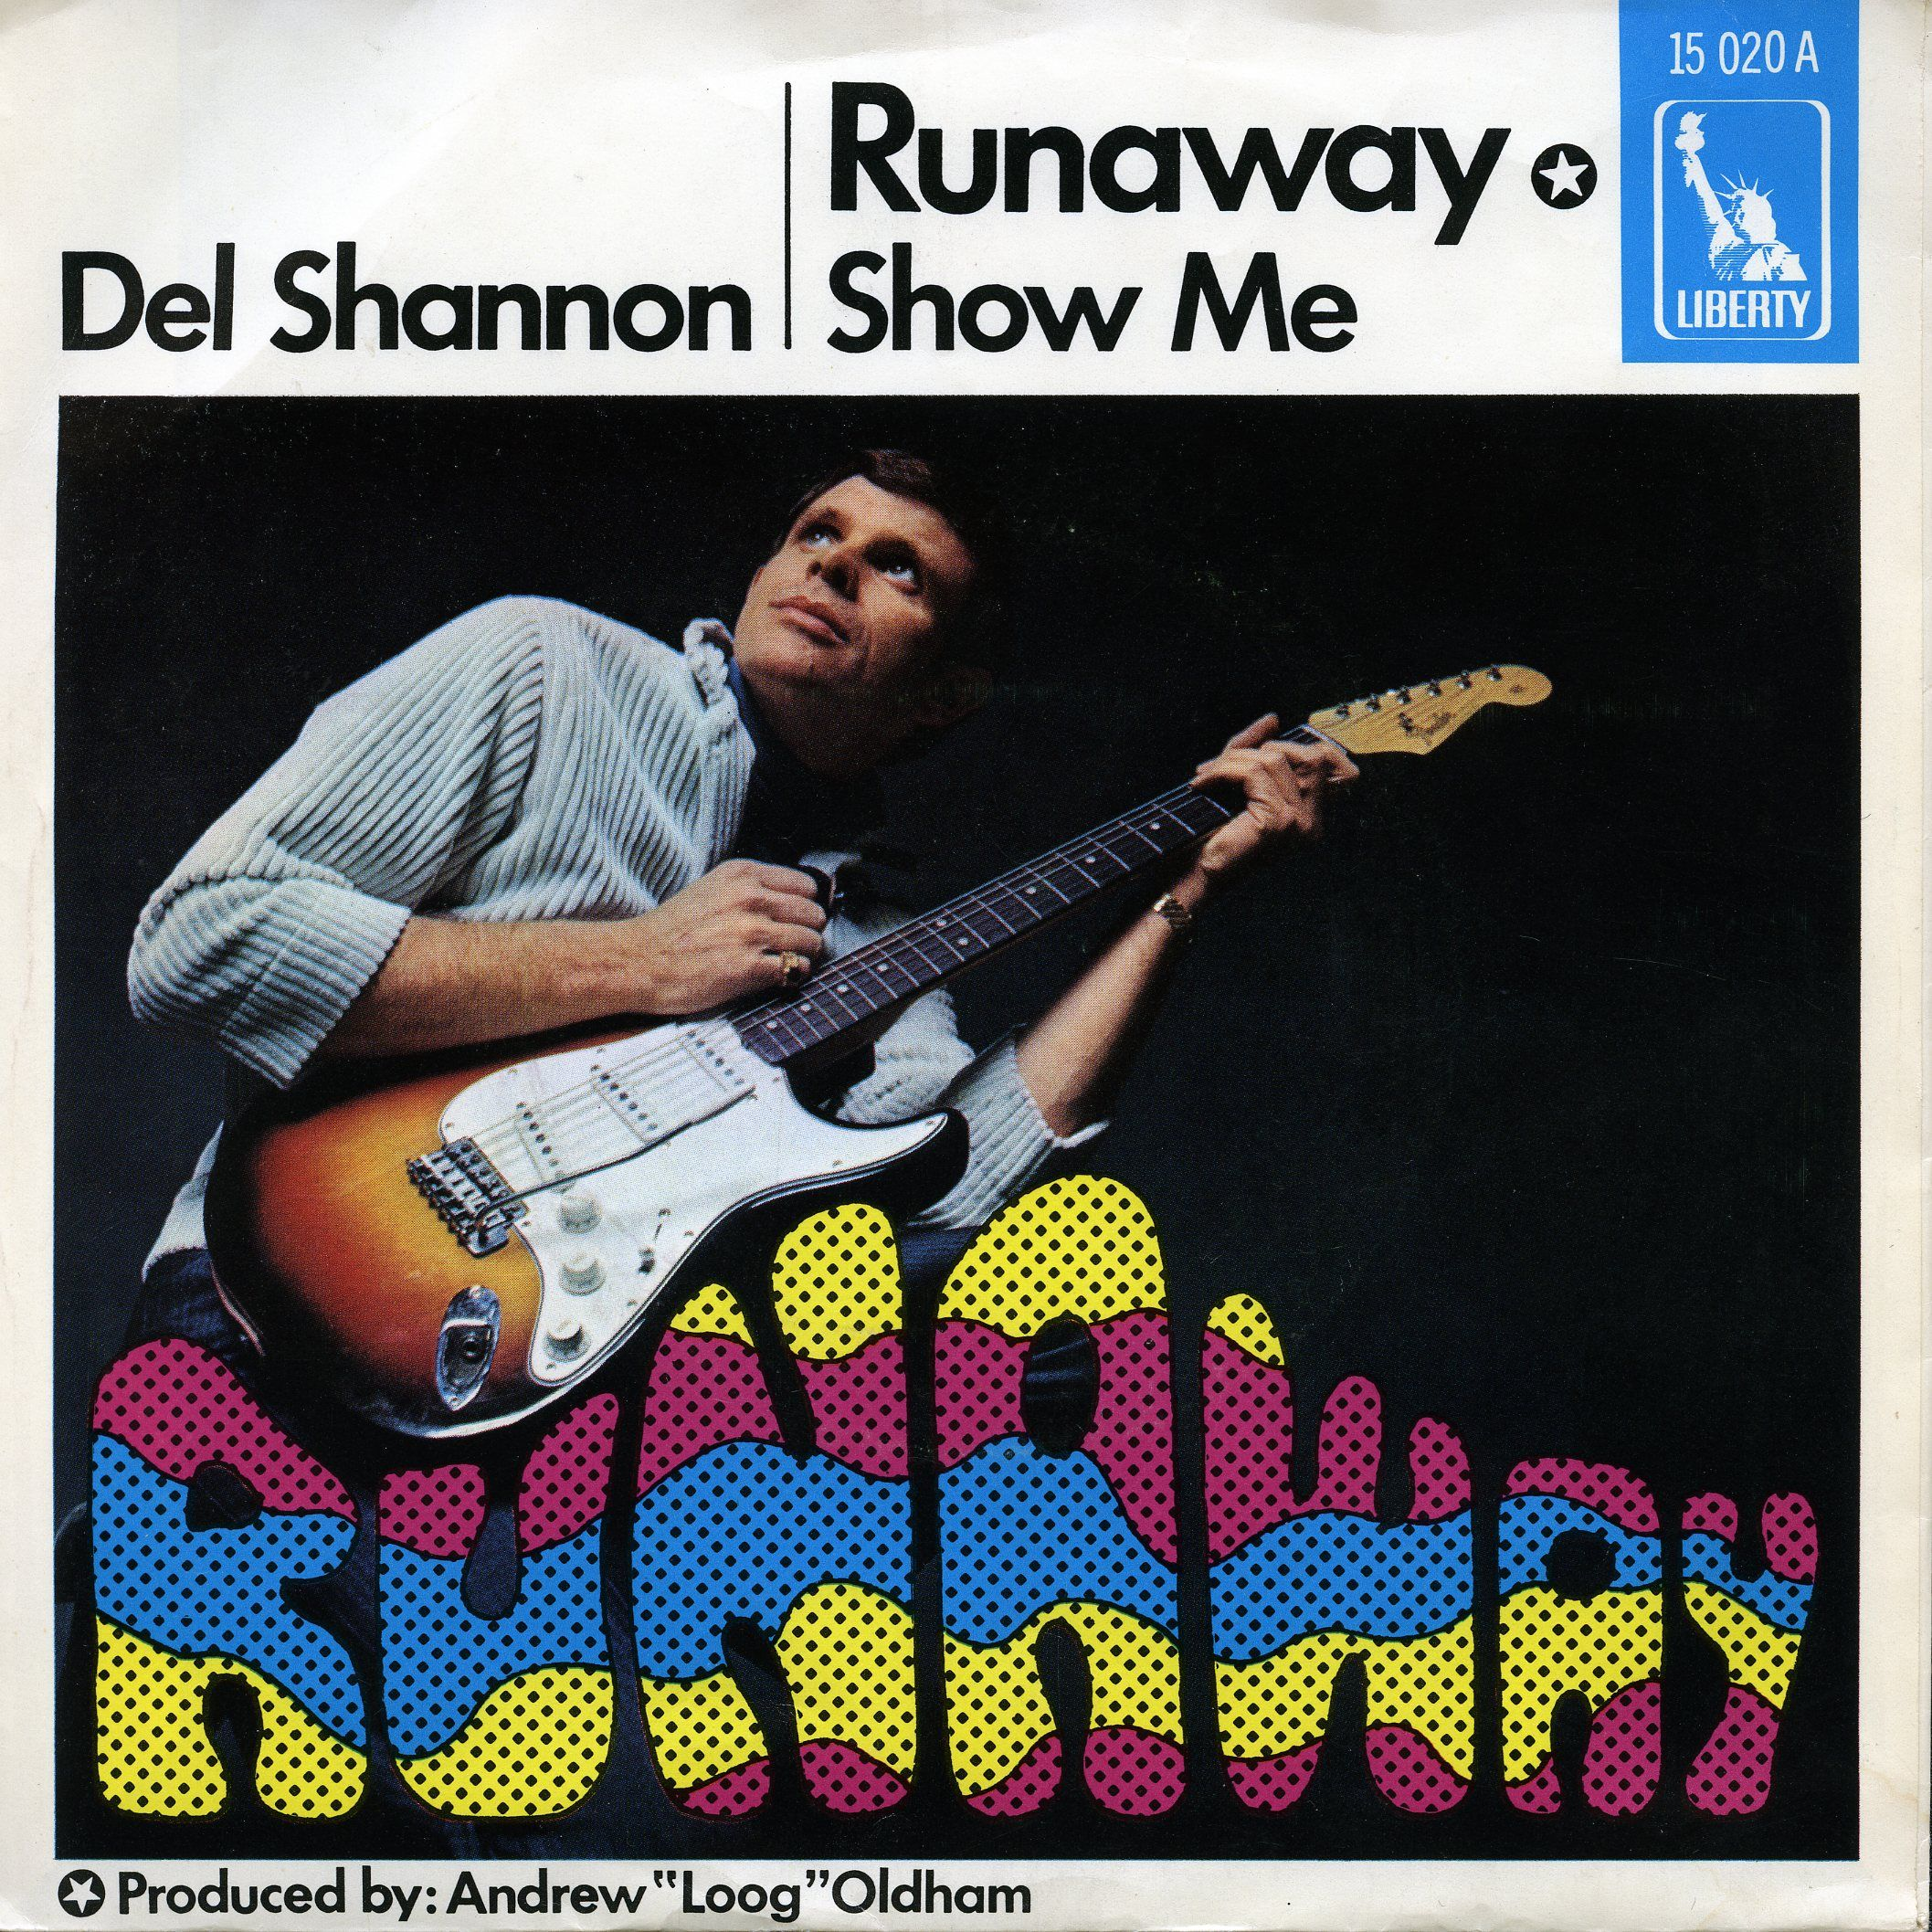 Del Shannon Runaway 1967 Germany Classic Album Covers Vinyl Records Covers Vinyl Poster